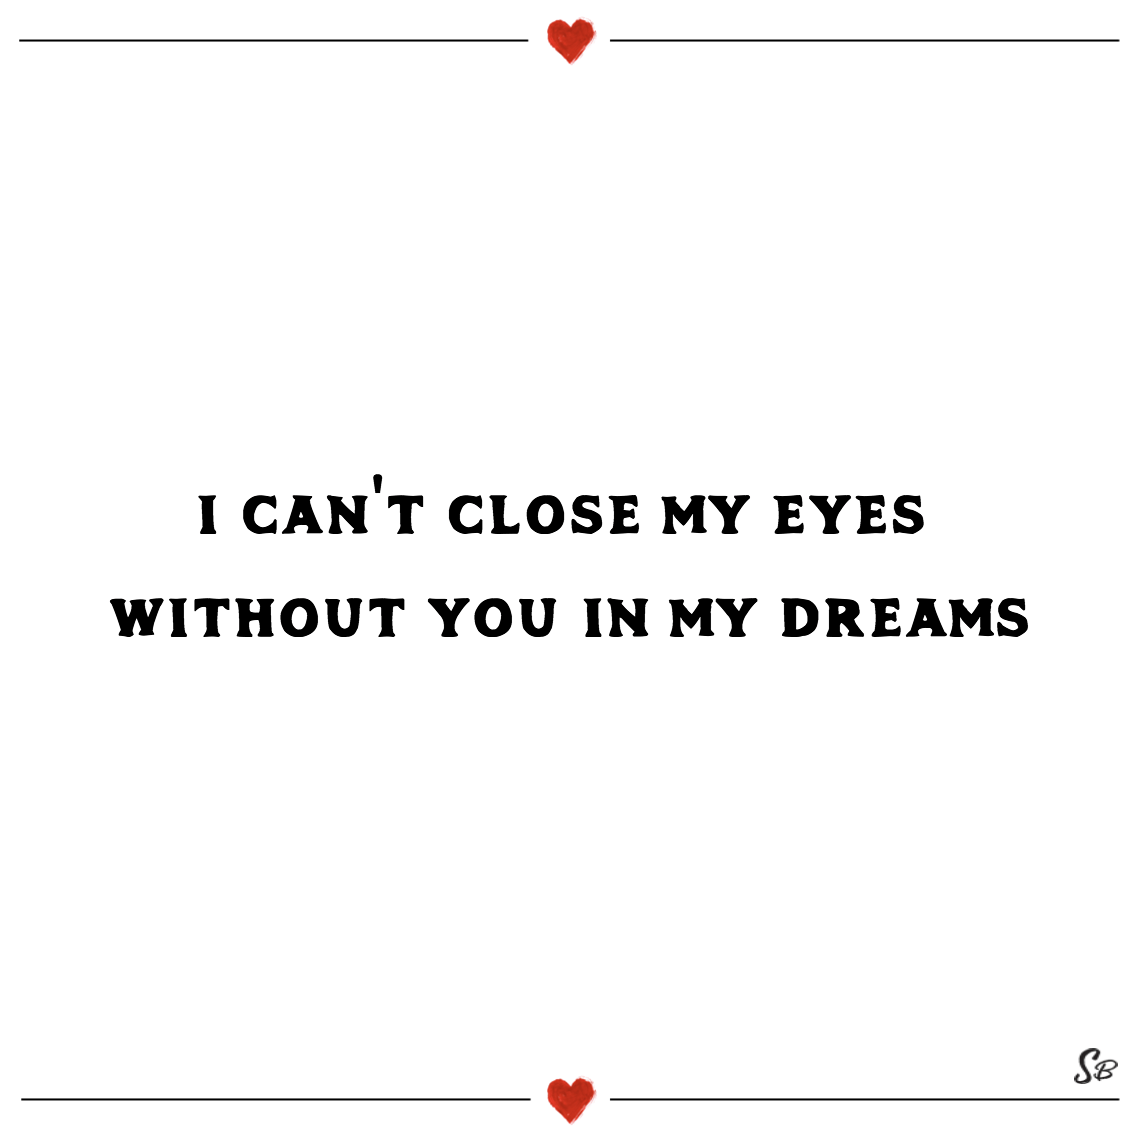 I can't close my eyes without you in my dreams luke bryan